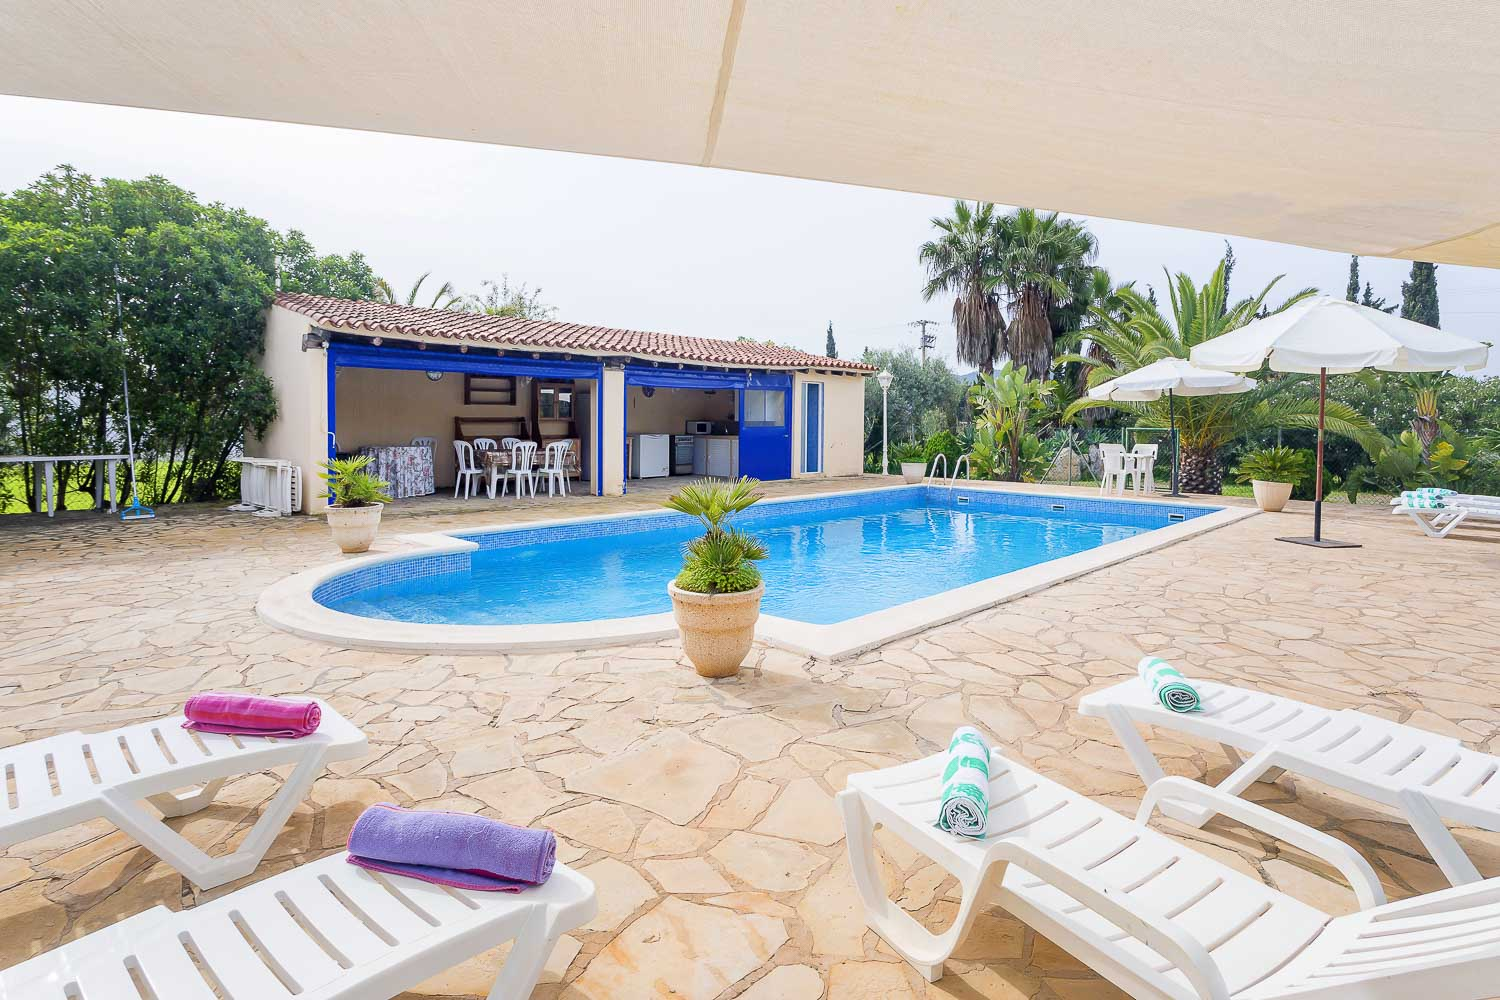 Pool zone in a rental house in Ibiza